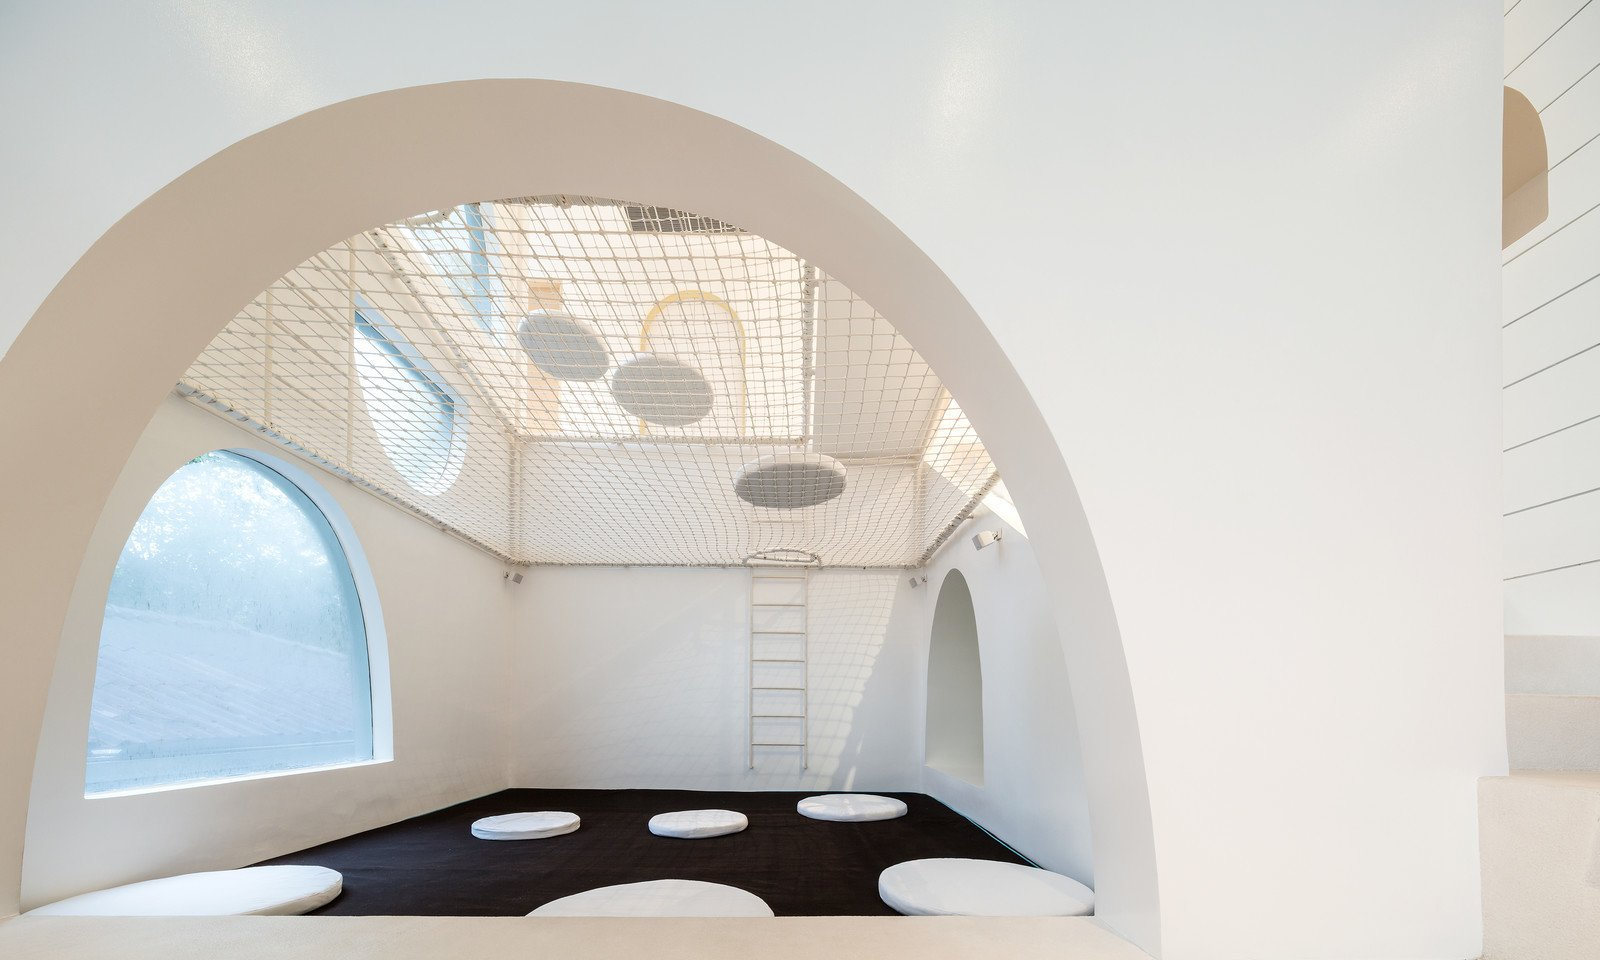 Photo 3 of 11 in Inspired by Tom and Jerry, This Net-Filled Vacation Home Is a Kid's Paradise